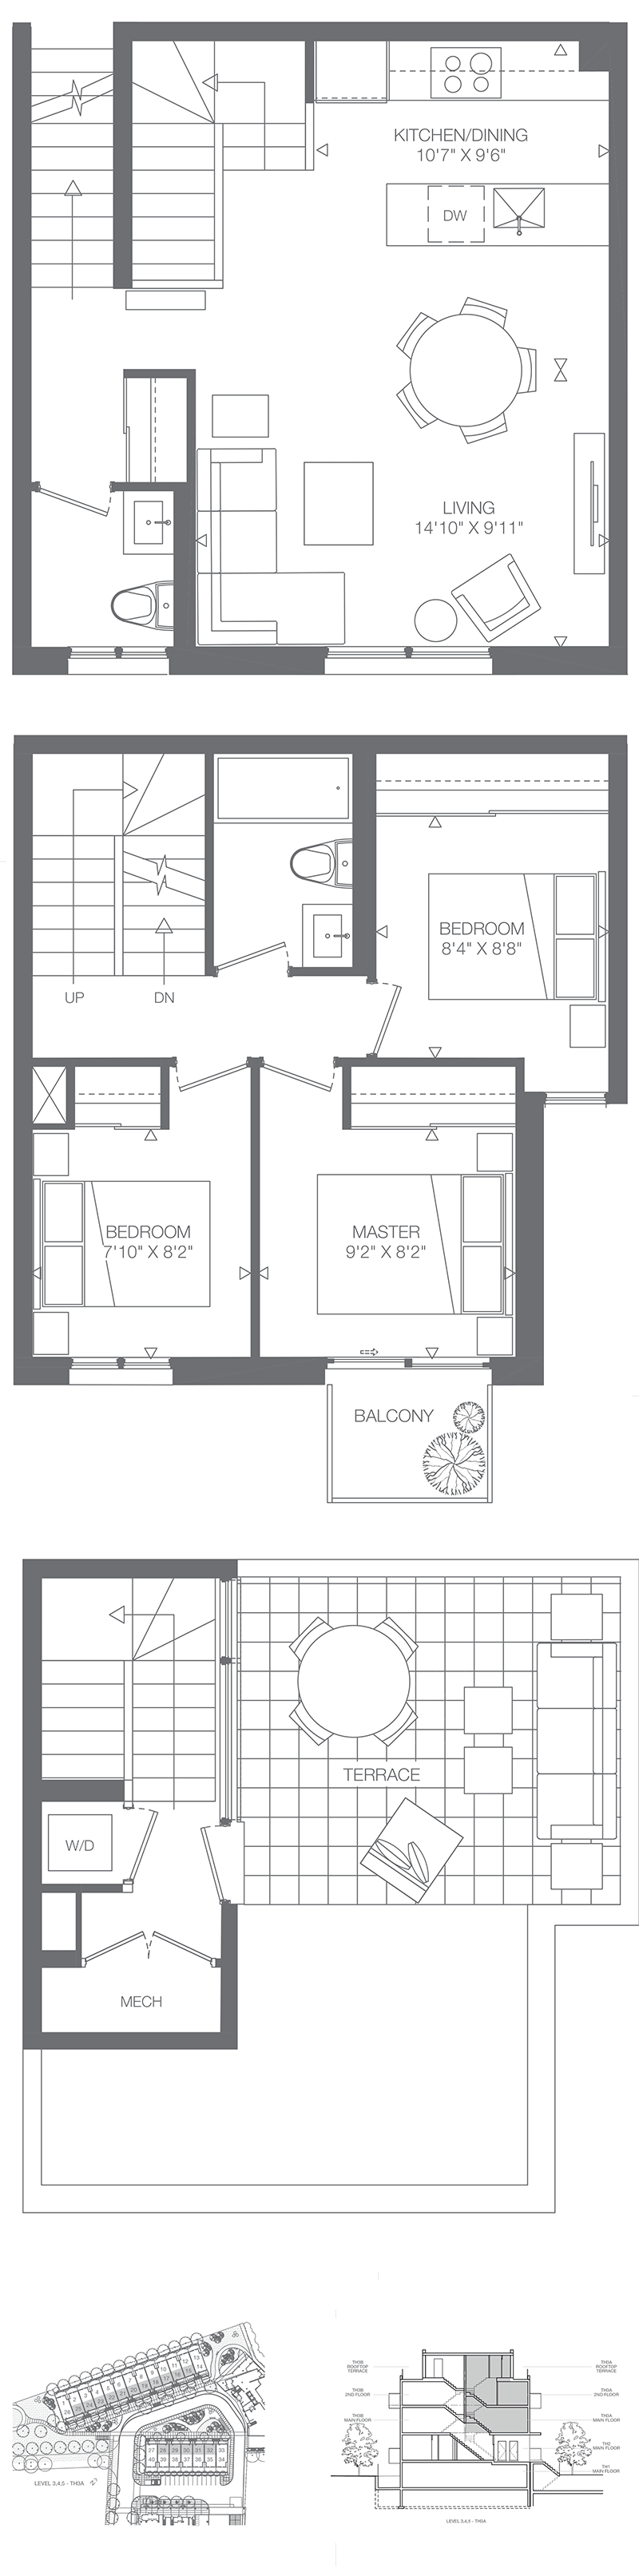 floorplans for 1 bedroom townhomes kingsway by the river 1 bedroom townhomes for rent burlington nc trend home